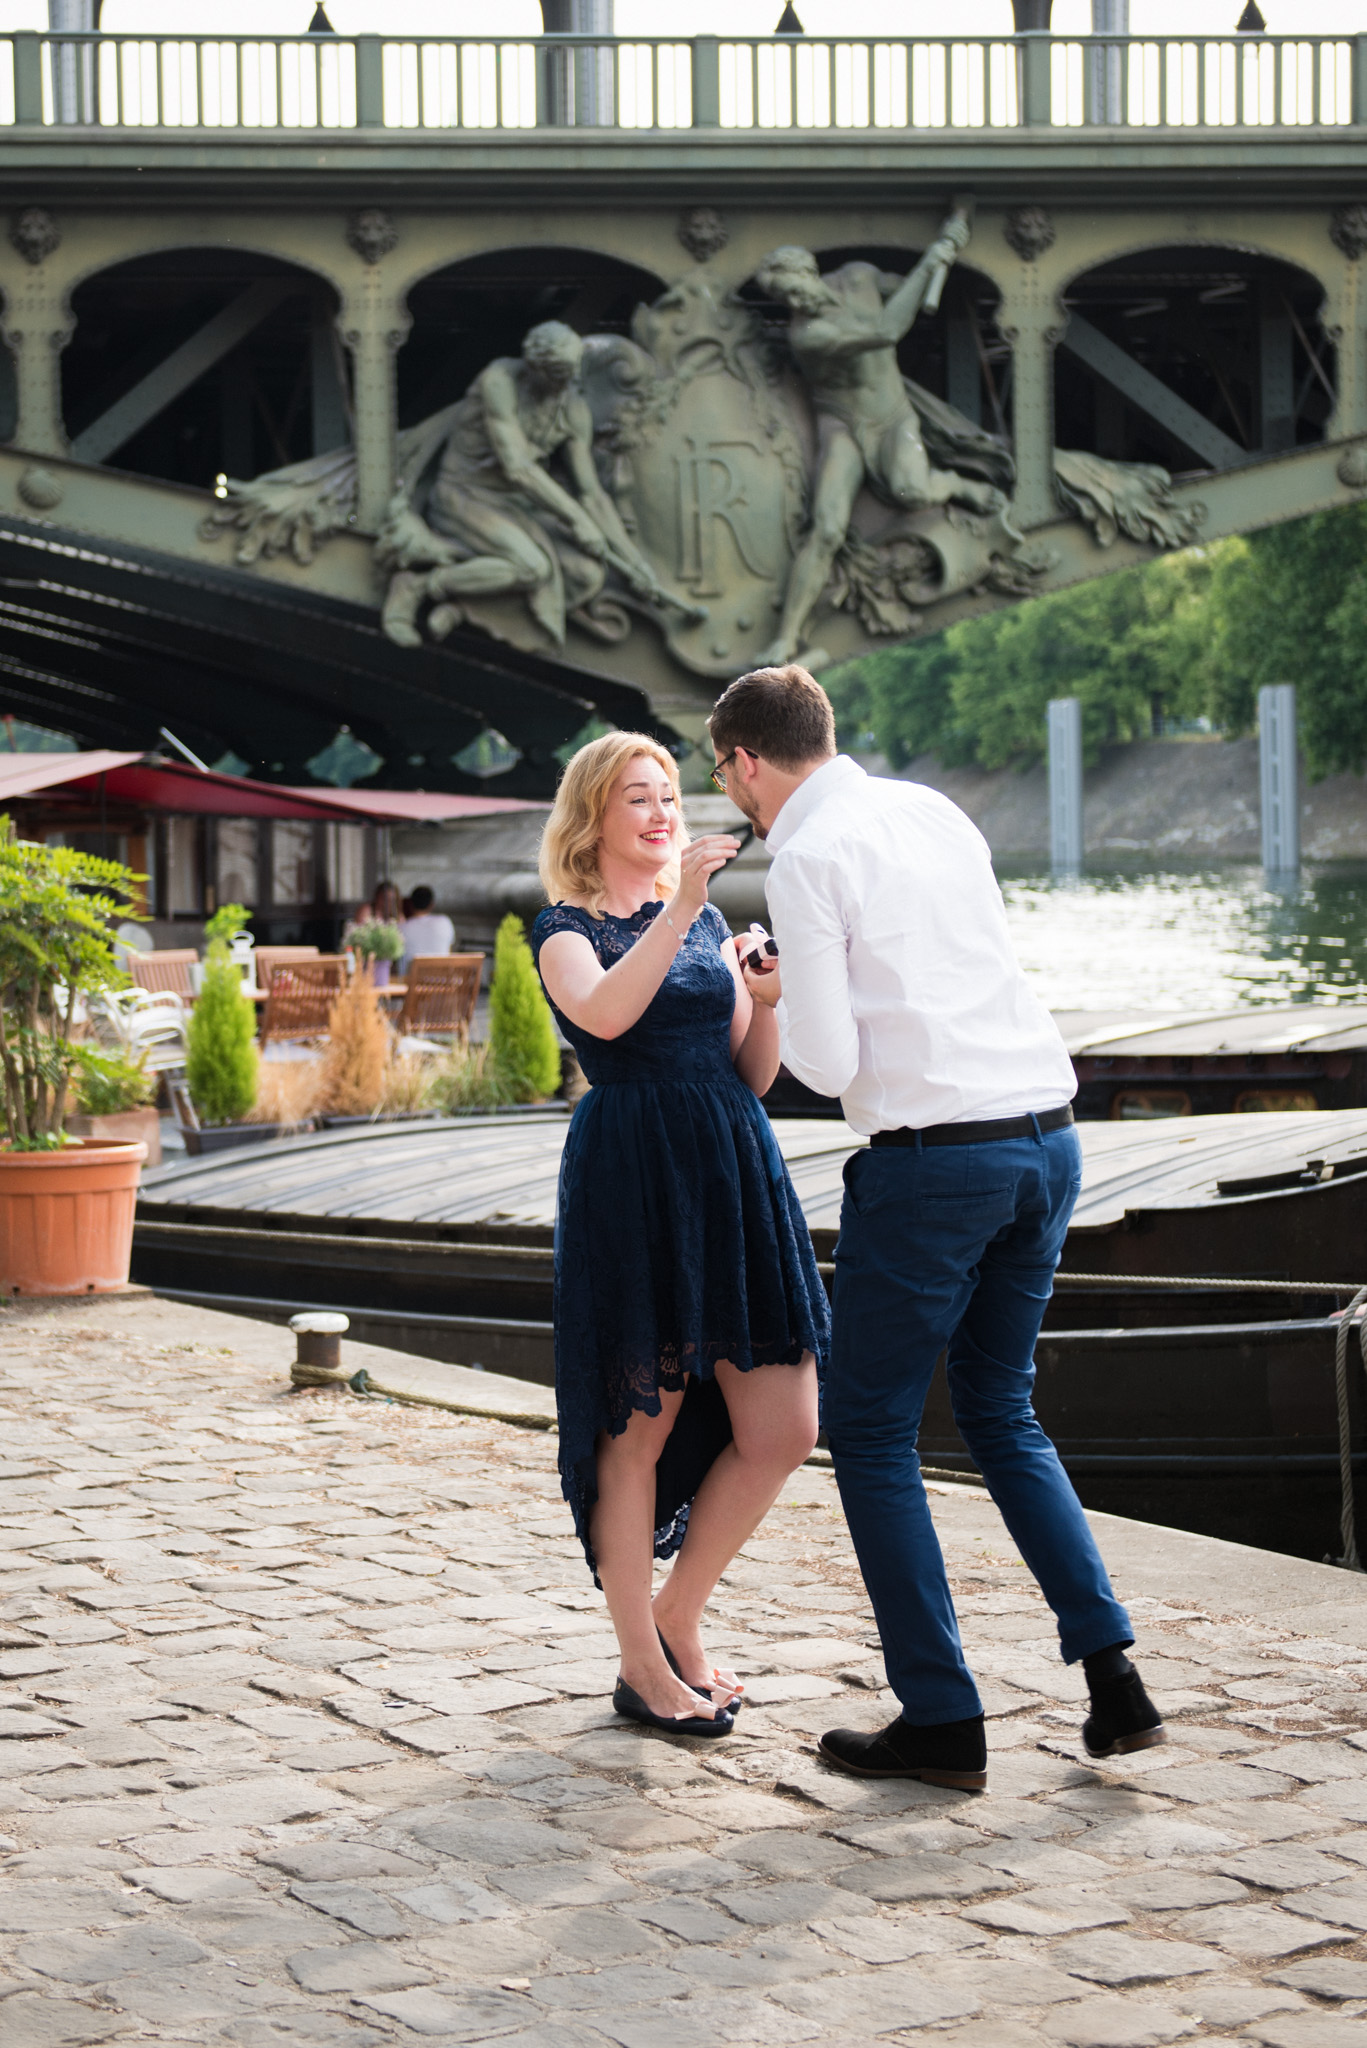 Proposal in Paris by Paris photographer Shantha Delaunay.jpg